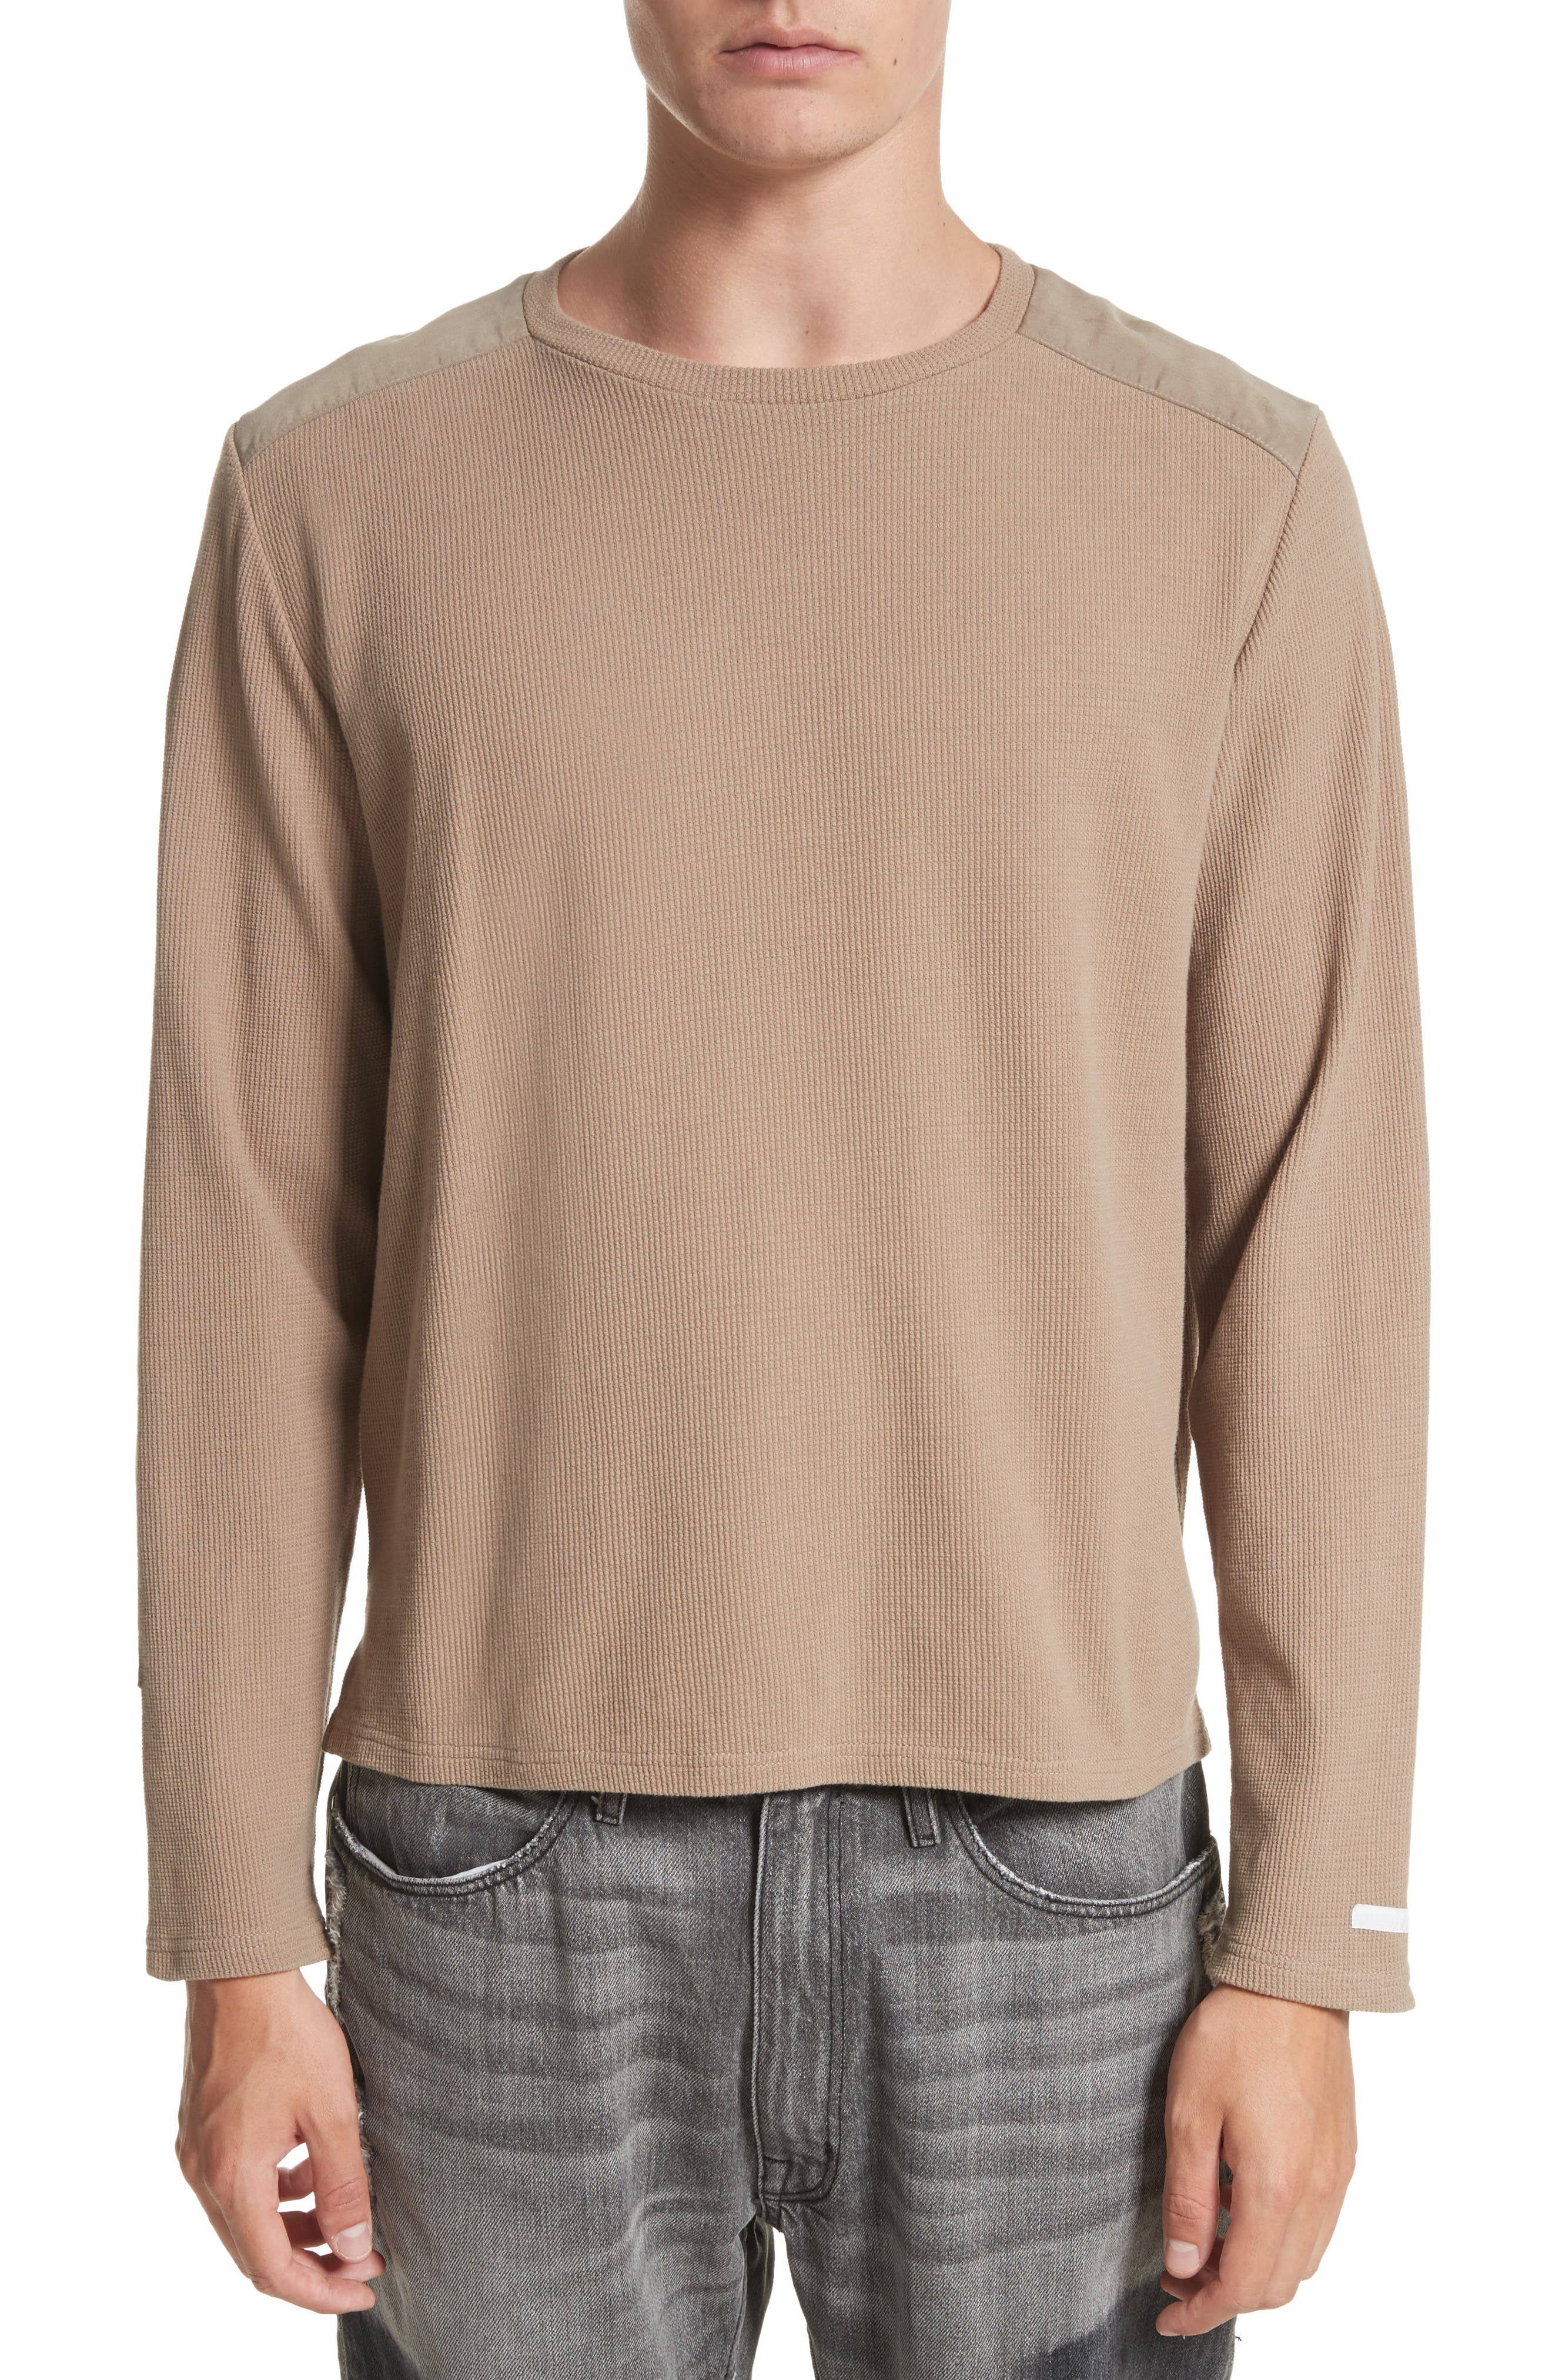 Alternate Image 1 Selected - OVADIA & SONS Crewneck Sweater